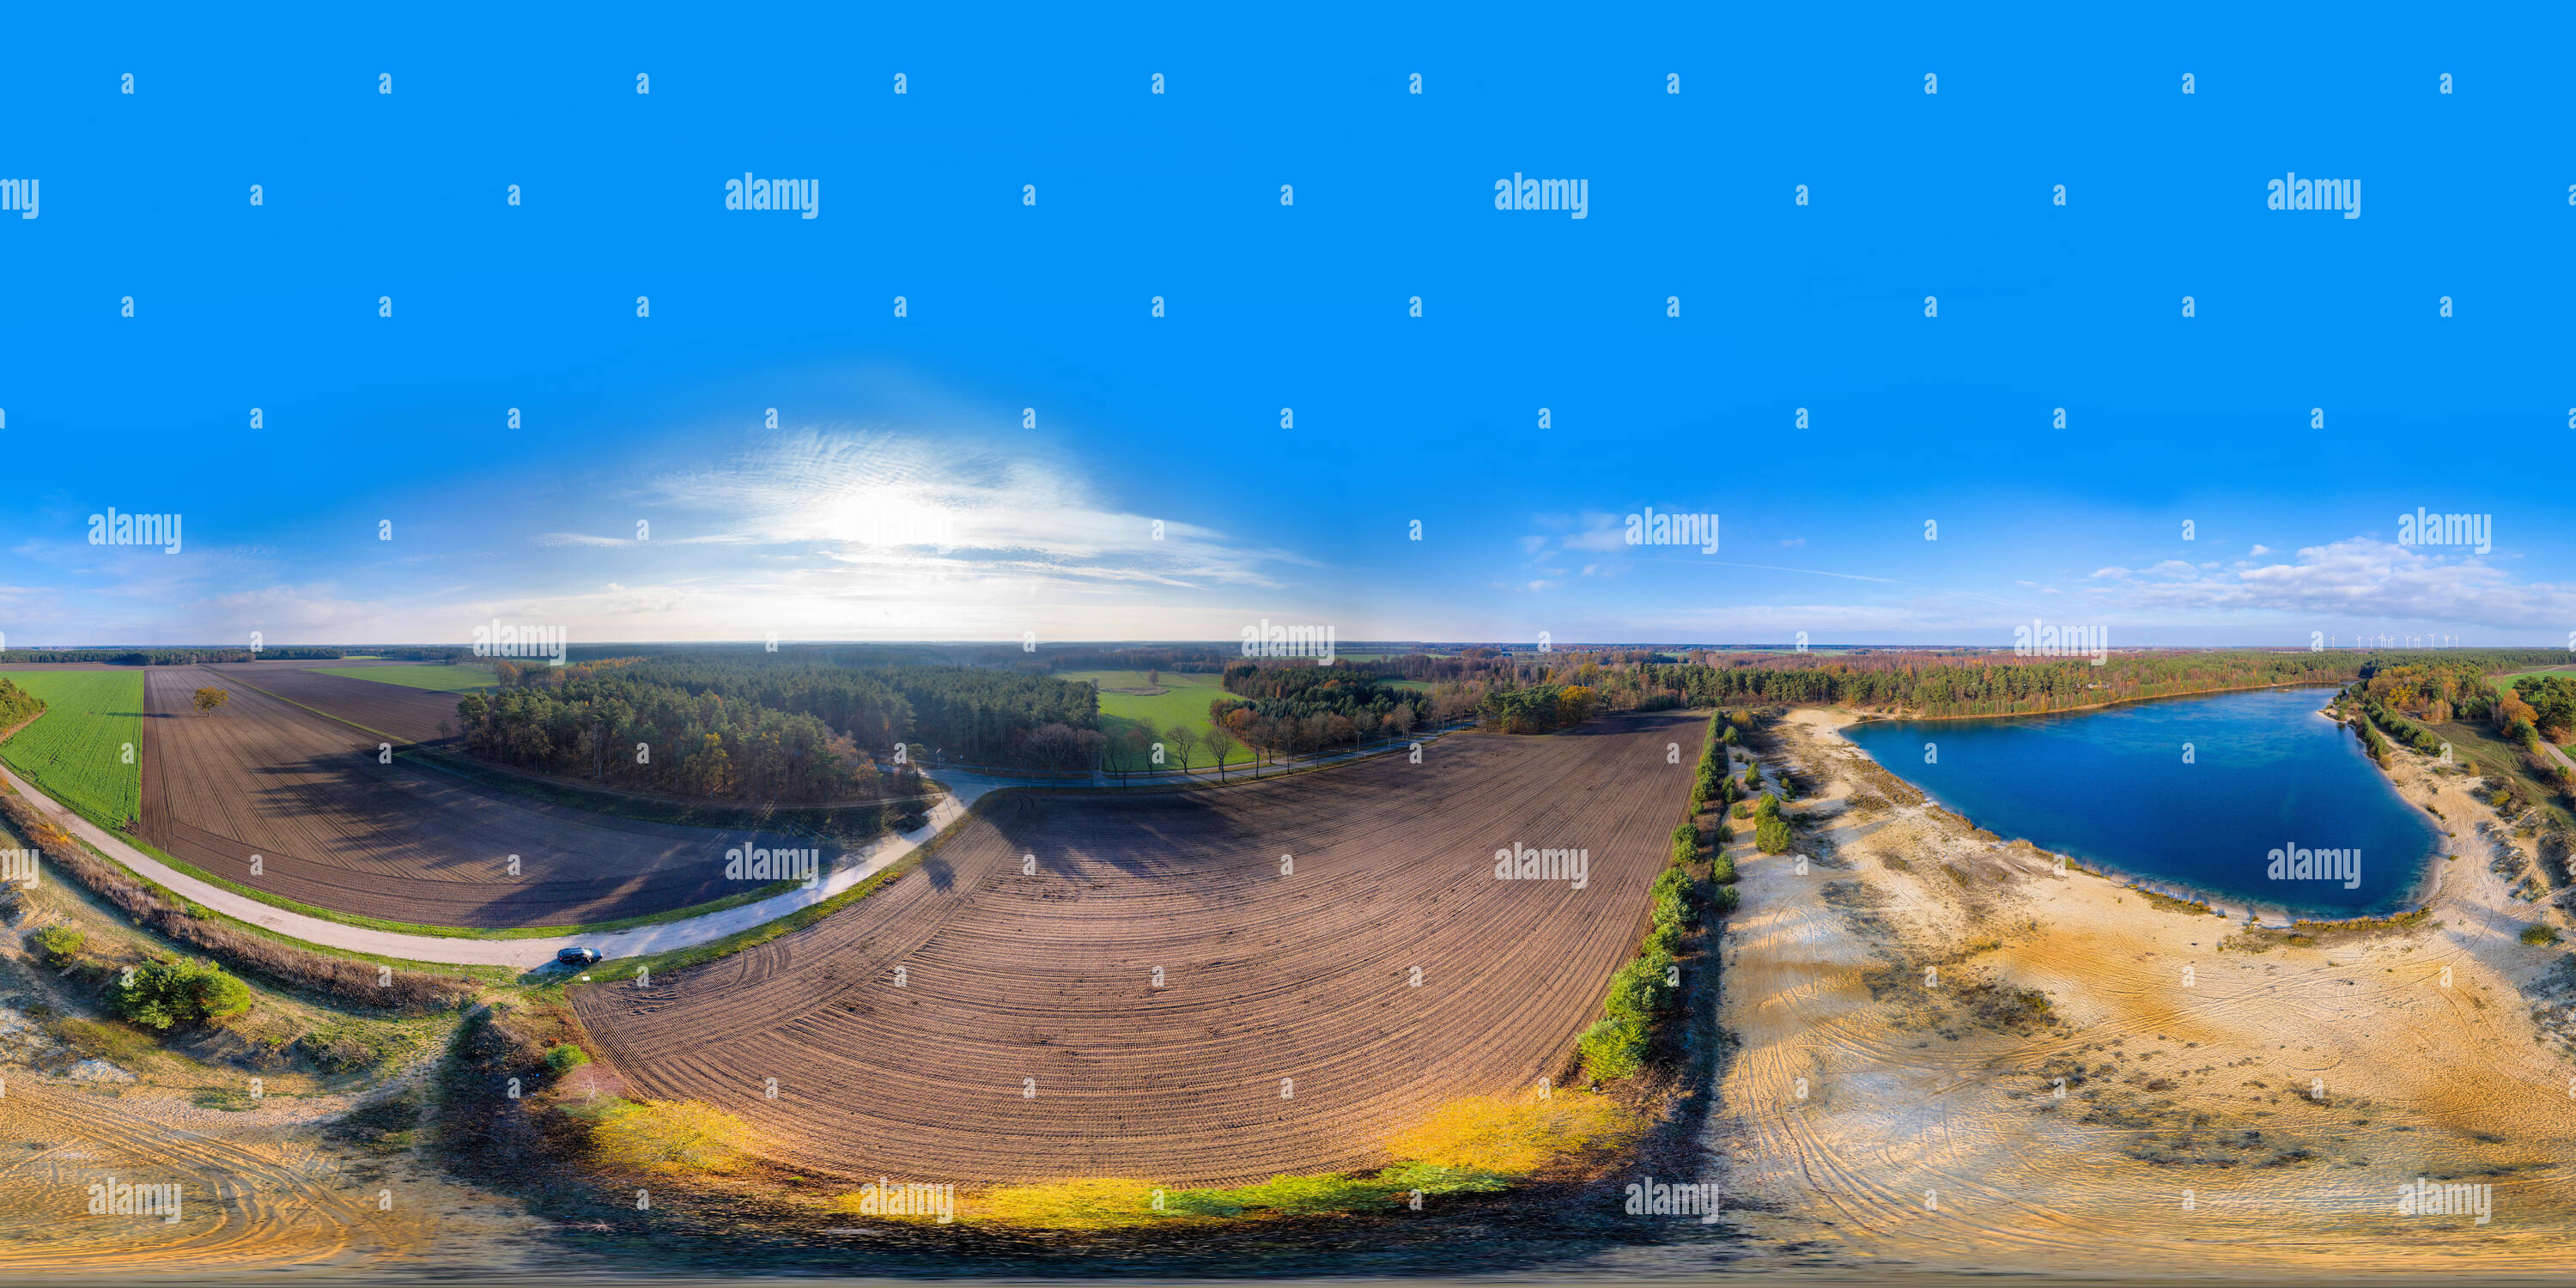 360 degree panoramic view of 360-degree panorama of a field and a gravel pond next to a forest and a country road, taken with the drone in flight